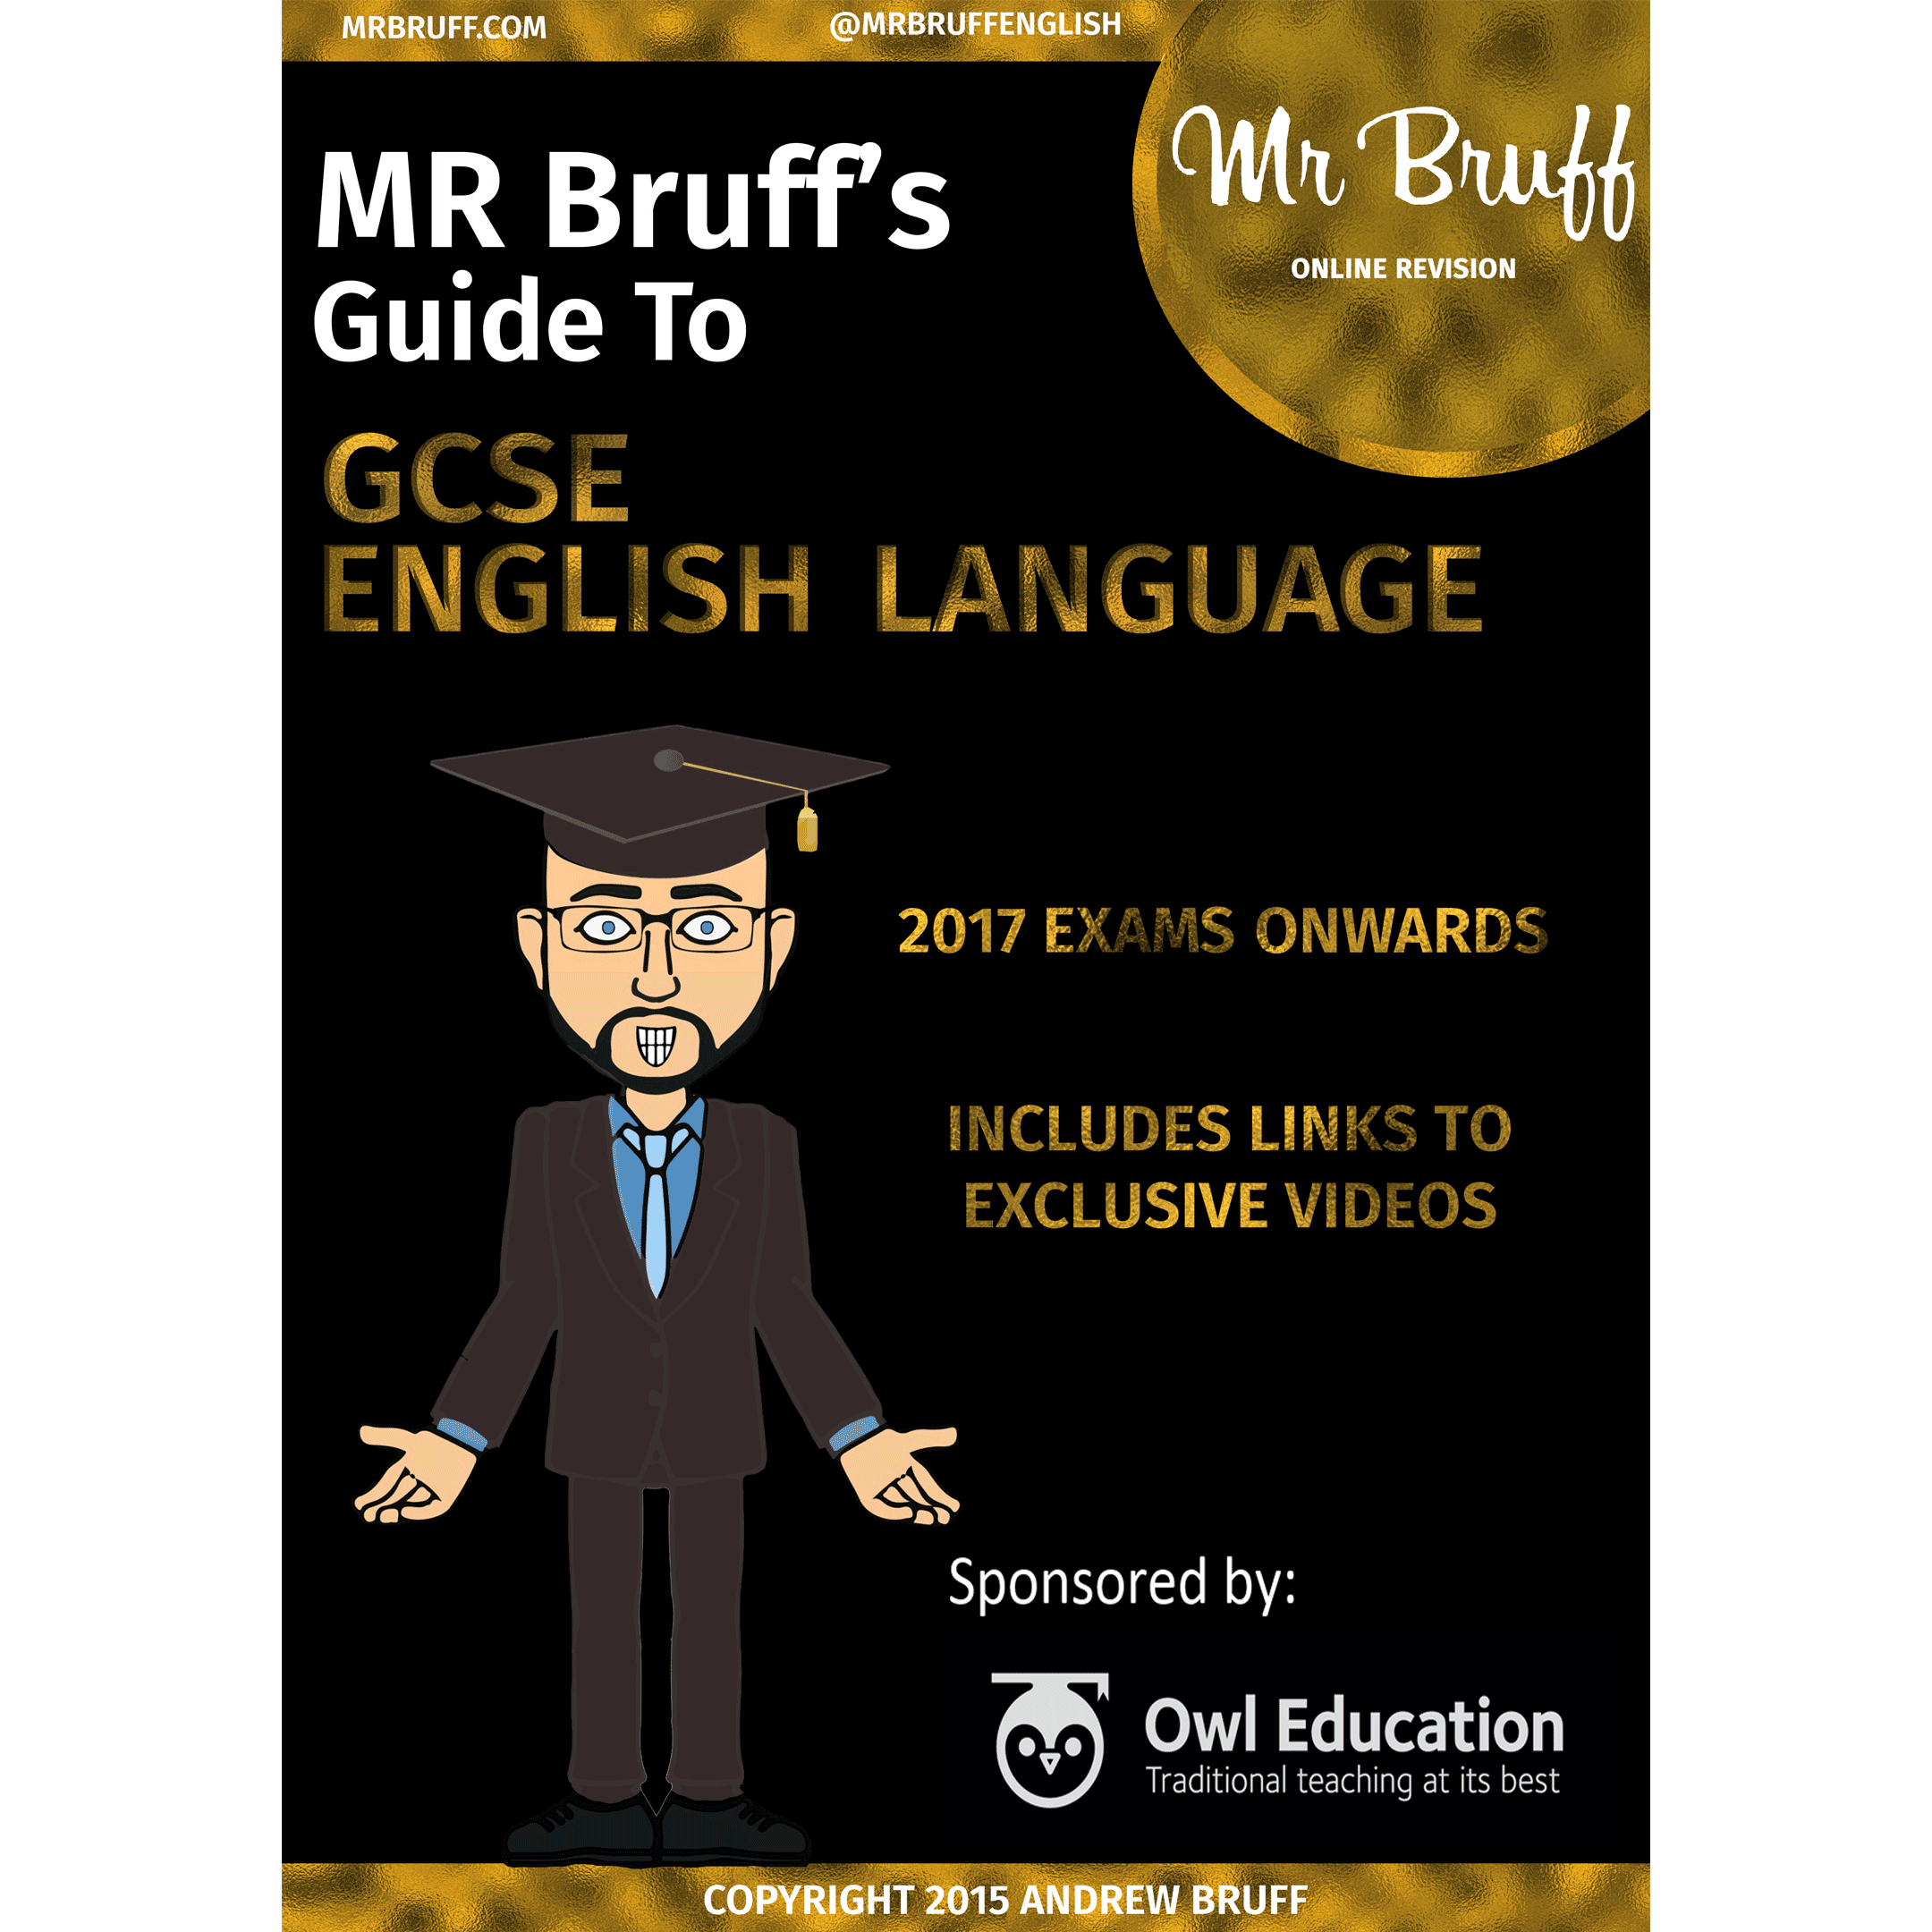 Mr bruffs guide to gcse english language ebook mrbruff mr bruffs guide to gcse english language ebook fandeluxe Gallery